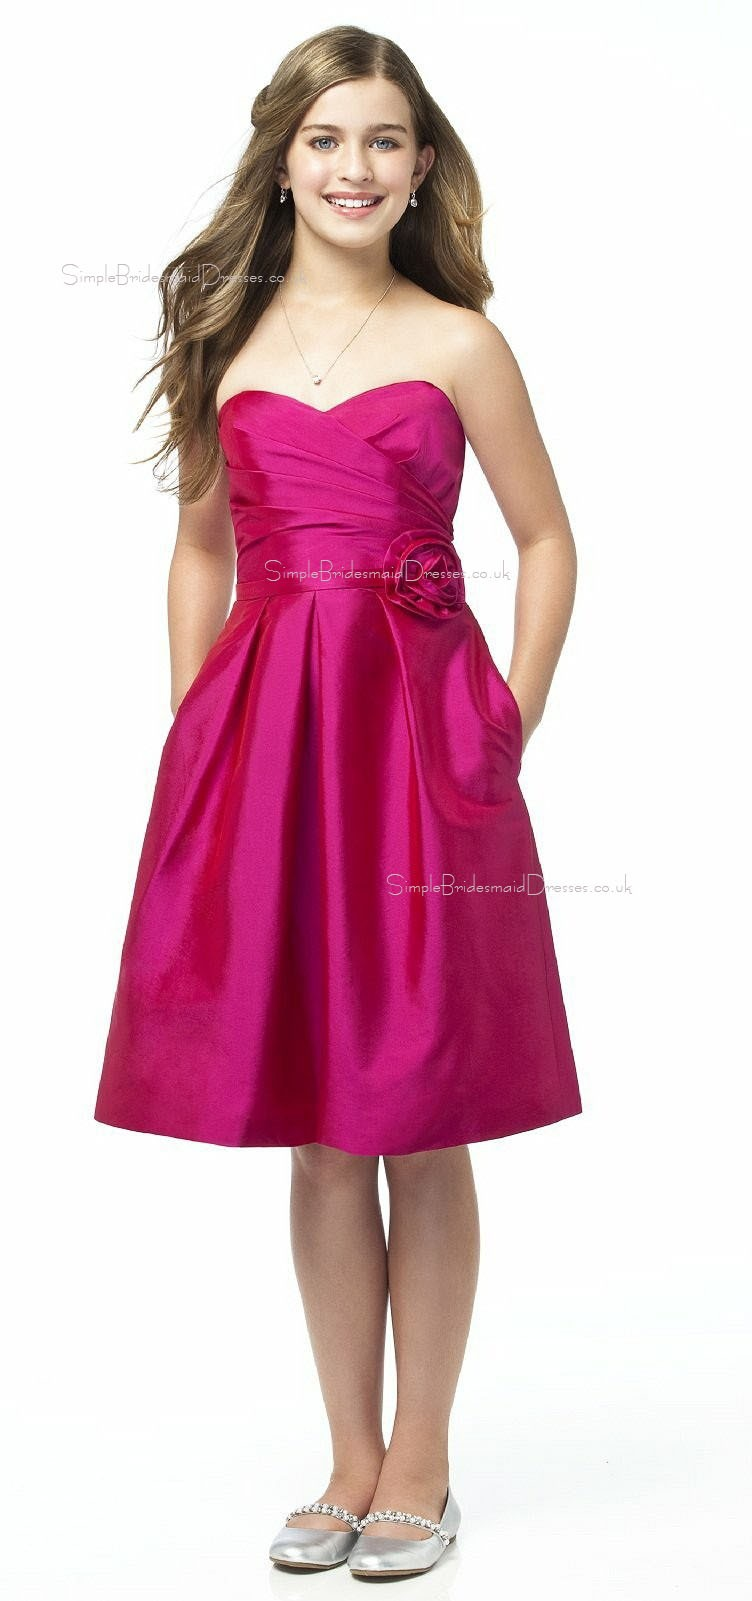 Junior Bridesmaid Dresses UK | Teenage bridesmaid dresses | Cheap ...